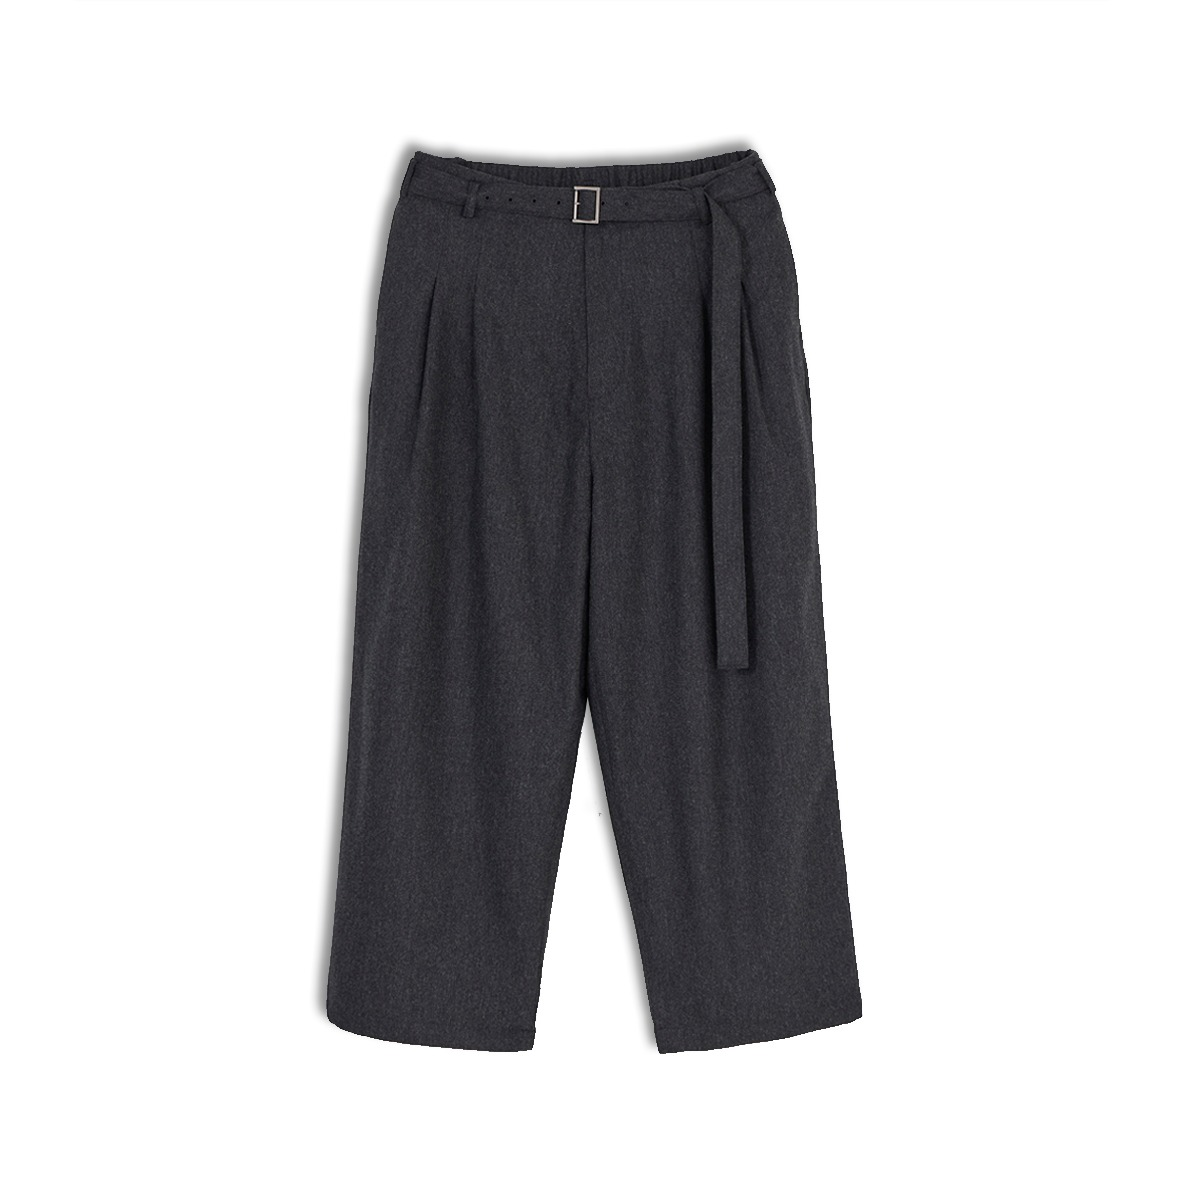 [YOUTH] BELTED LOOSED PANTS 'CHARCOAL GREY'